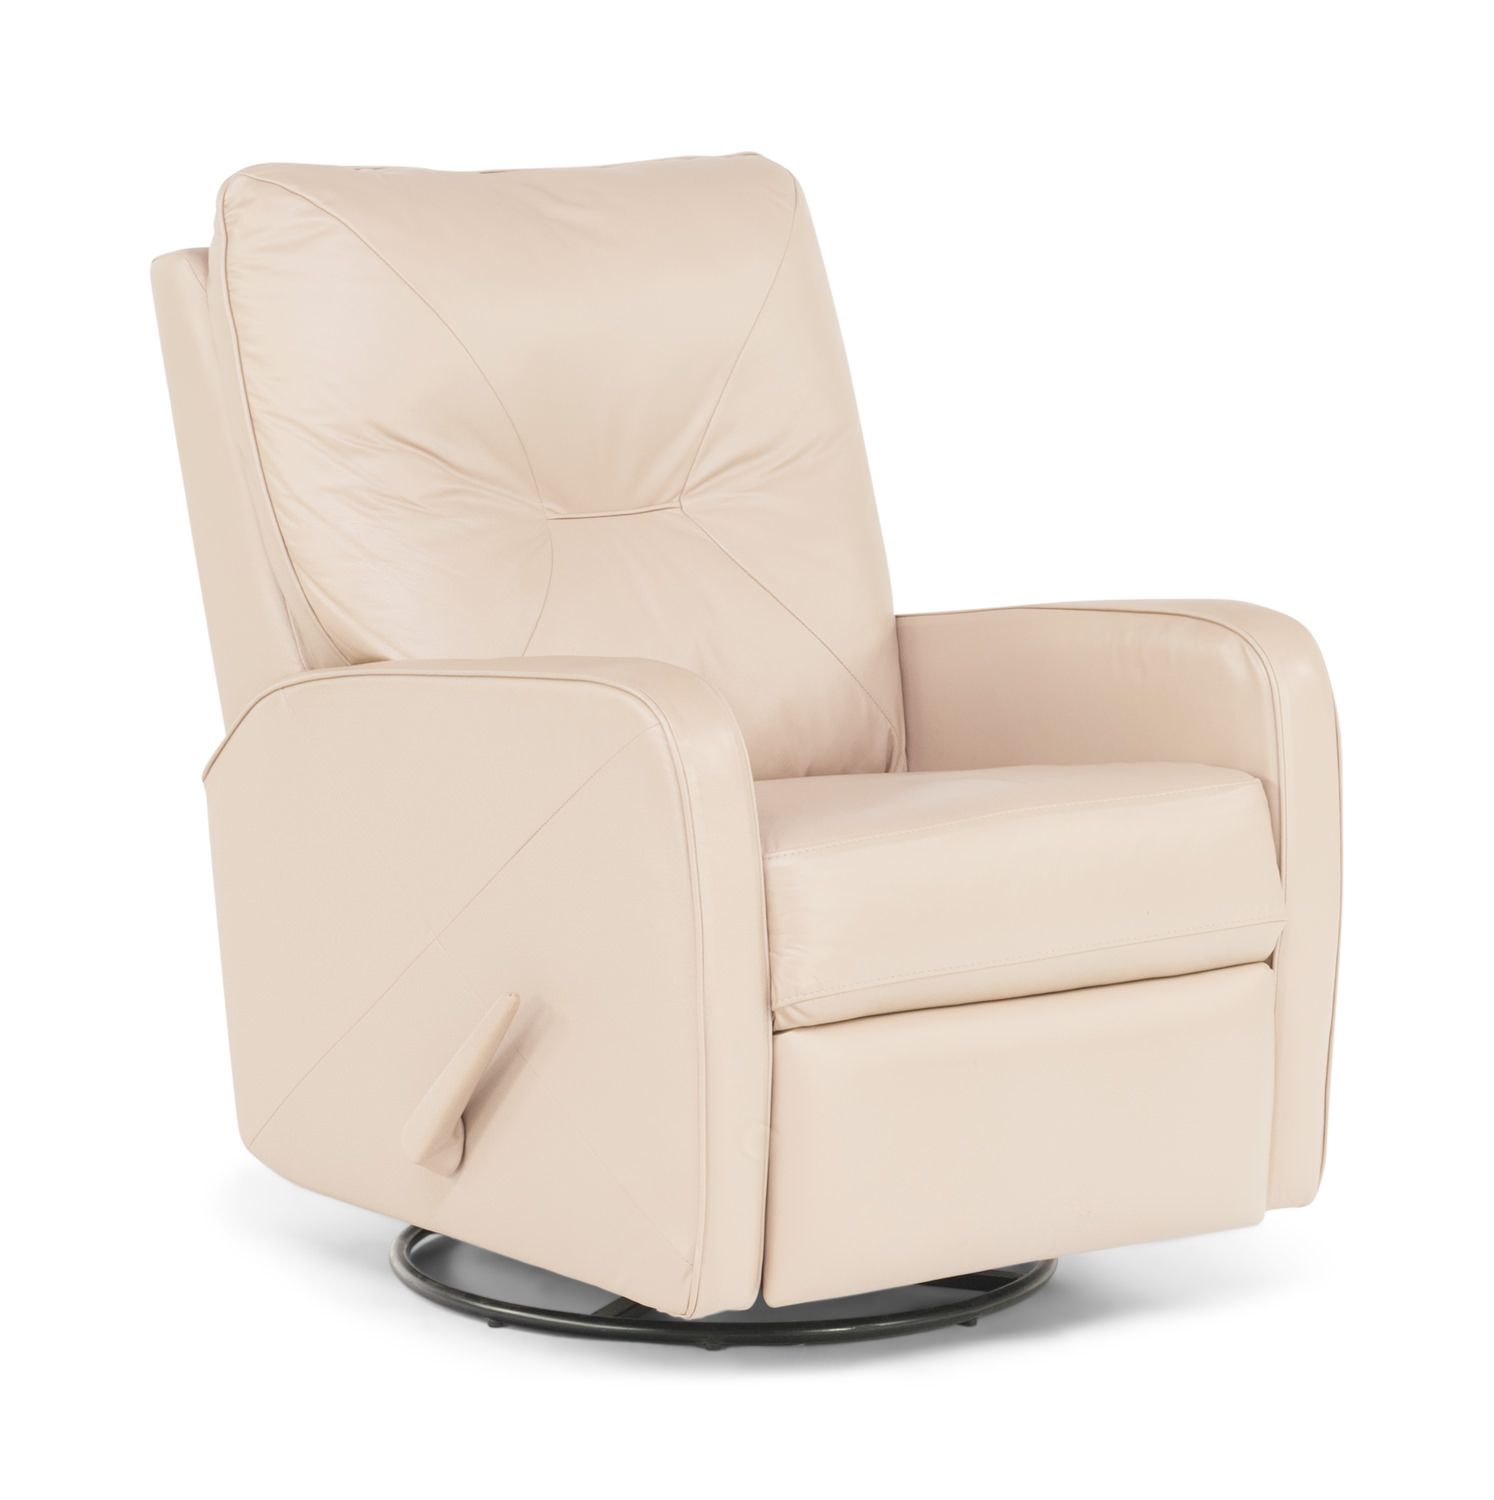 Featured Image of Theo Ii Swivel Chairs